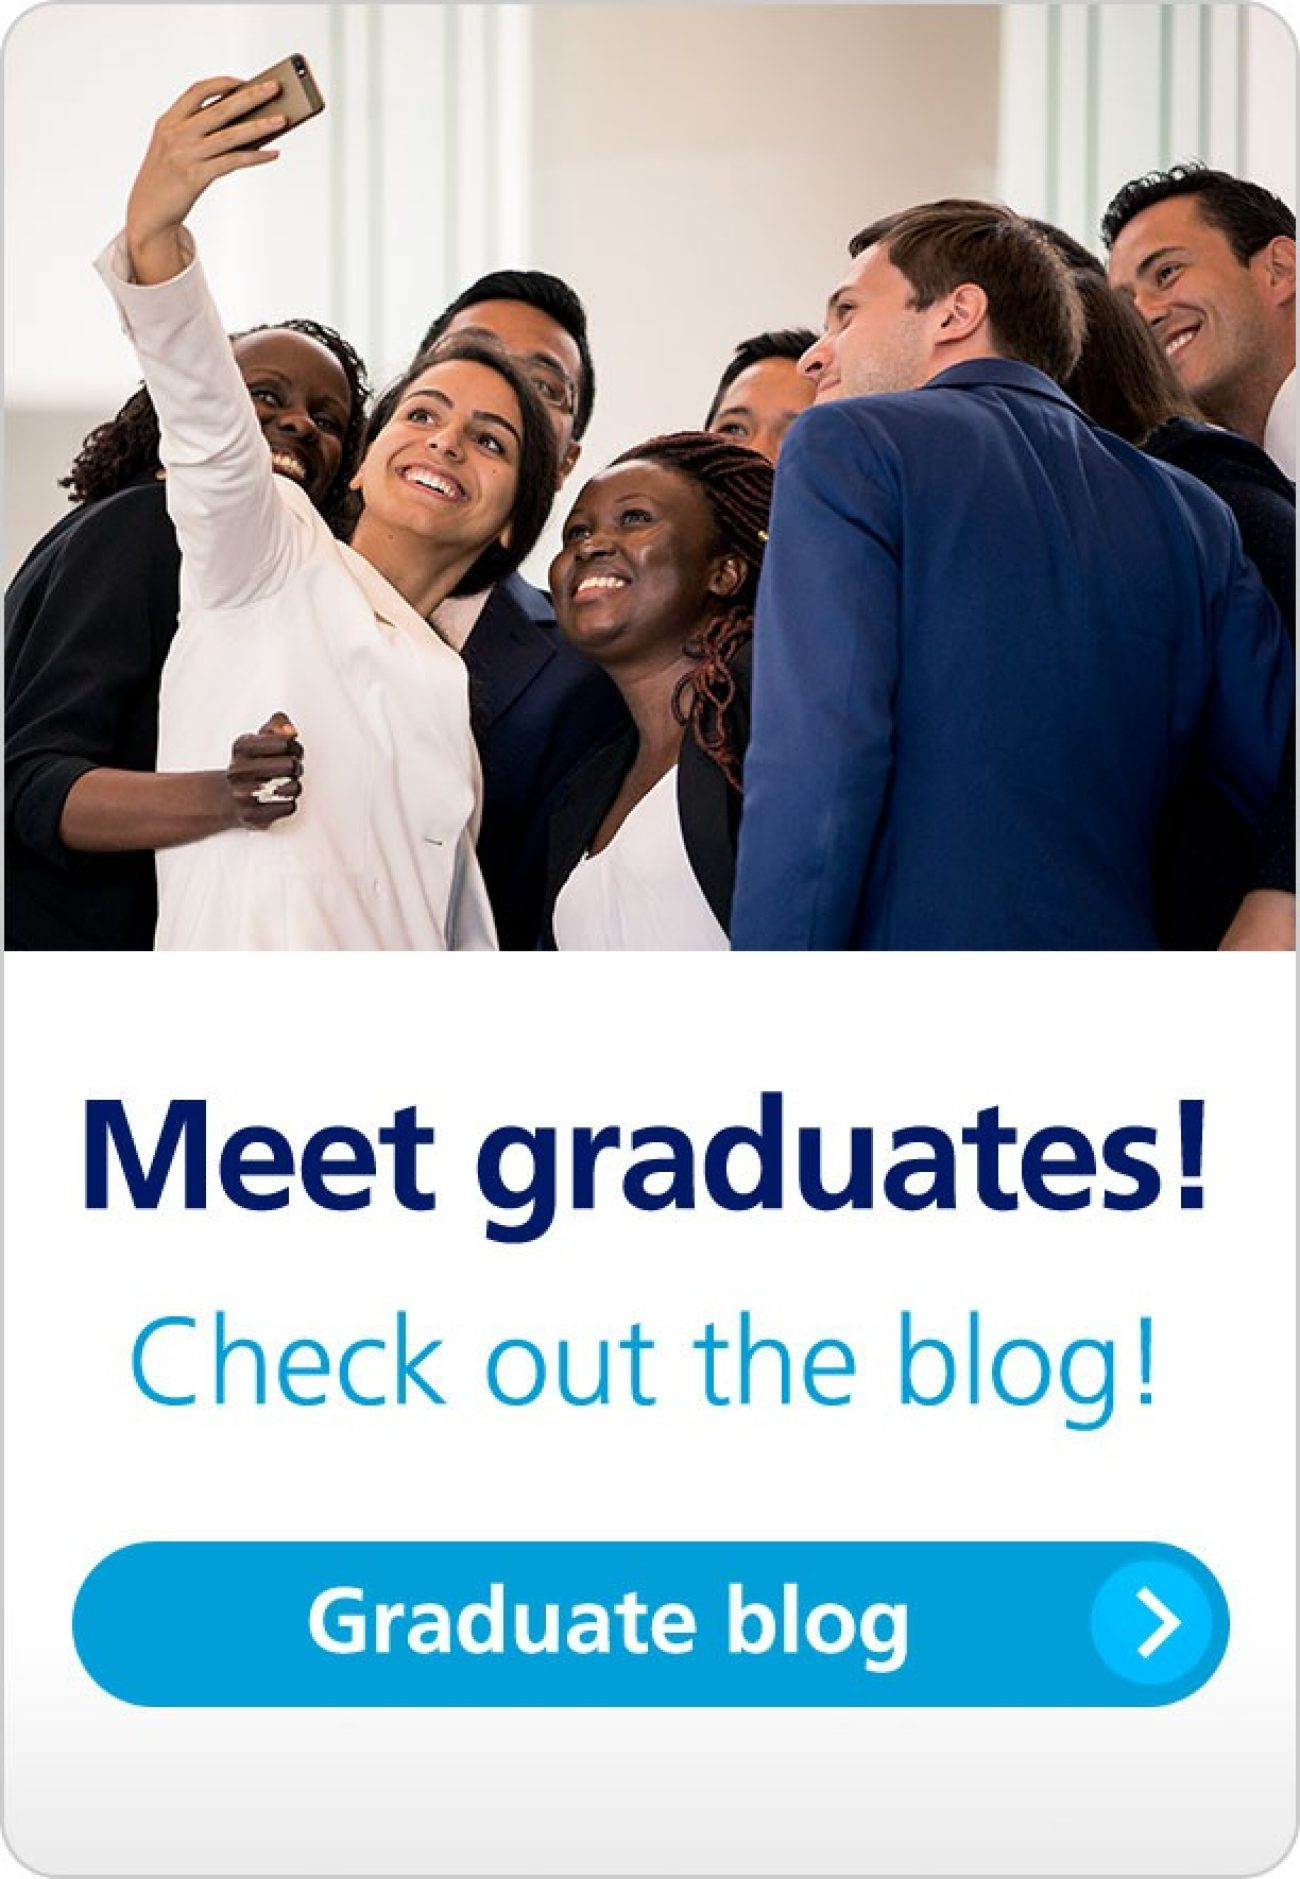 Meet graduates. Check out the blog.